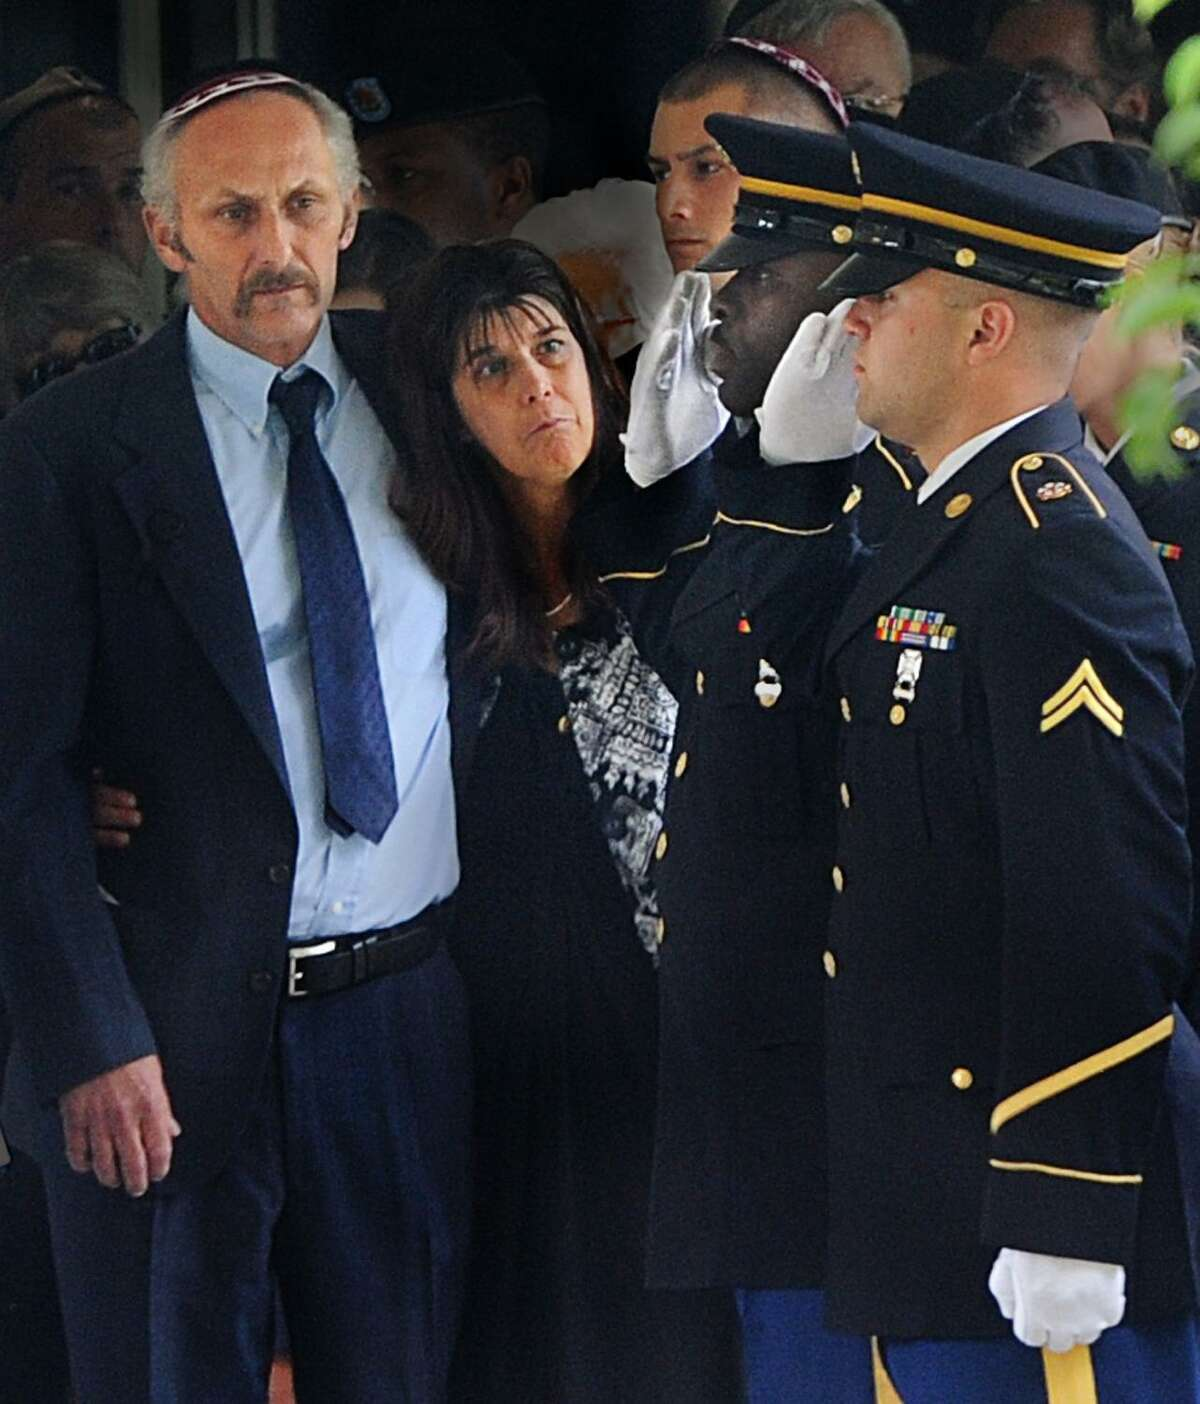 Michael and Donna Soufrine, parents of PFC Eric Soufrine, watch as pall bearers salute after placing Soufrine's casket in the hearse. PFC Soufrine of Woodbridge was killed in Afghanistan. Melanie Stengel/Register